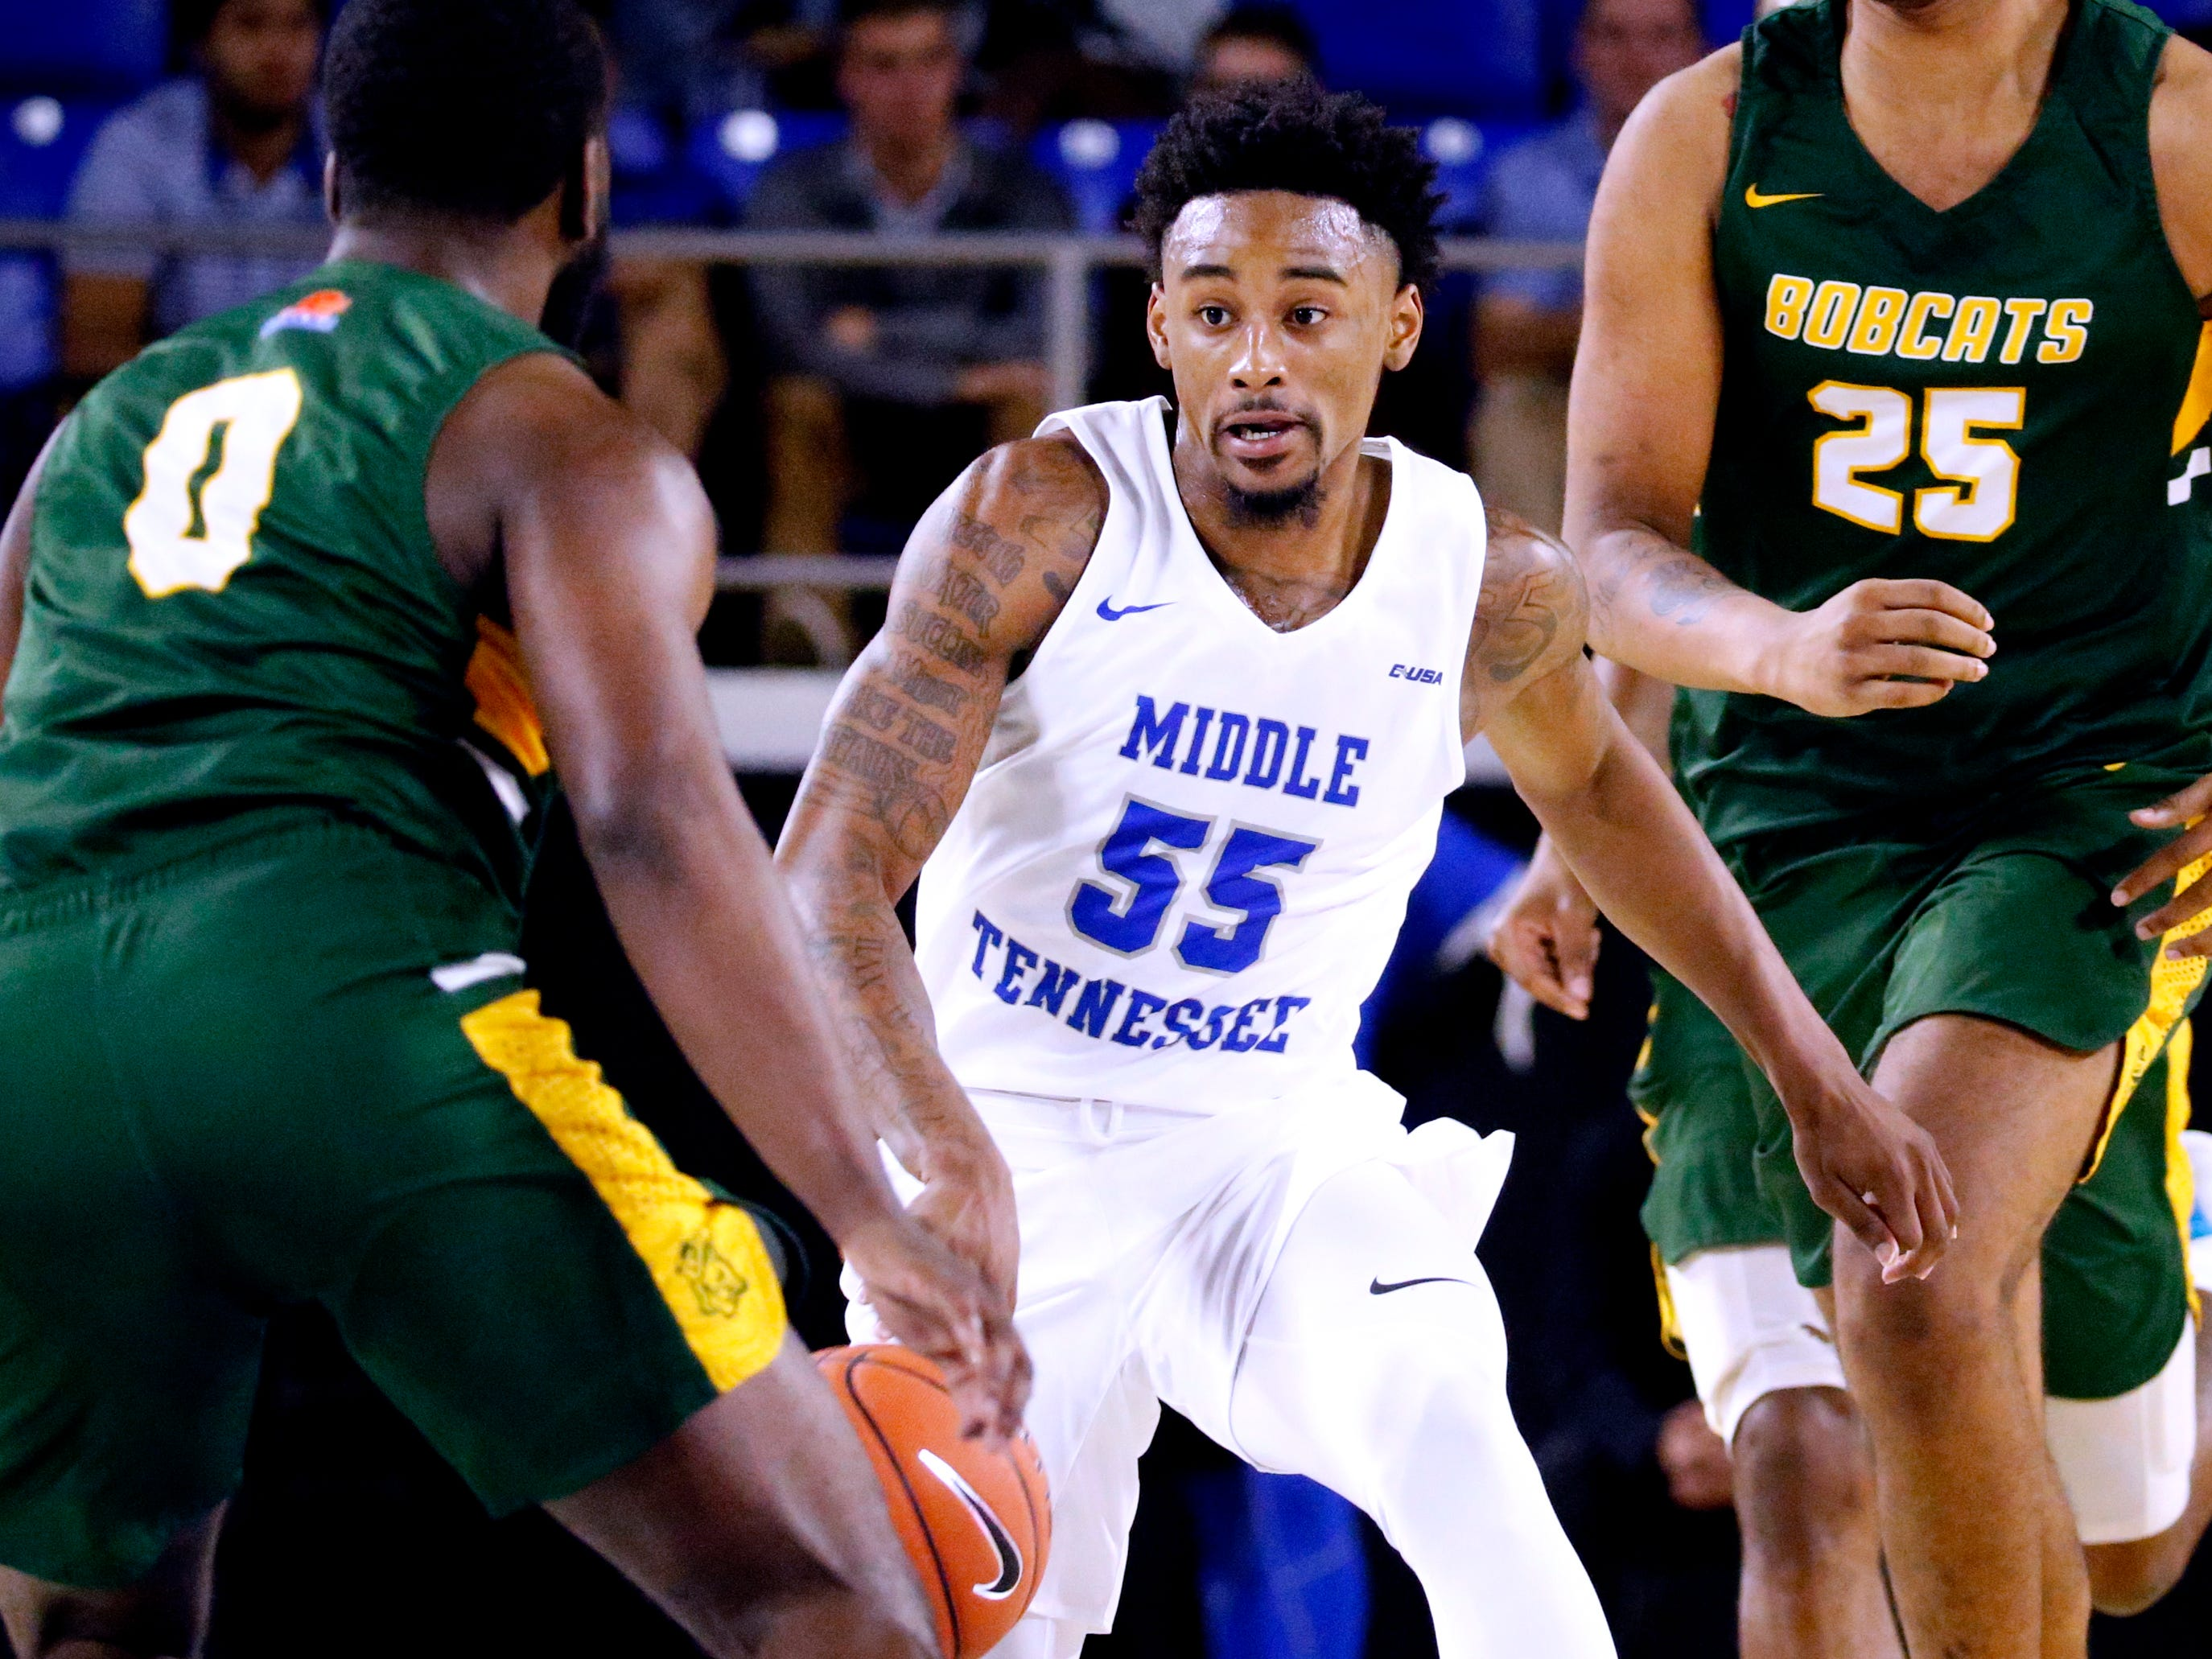 MTSU's Antonio Green (55) brings the ball down the court as Lees-McRae's Mike Lee Jr. (0) guards him on Tuesday, Nov. 6, 2018.